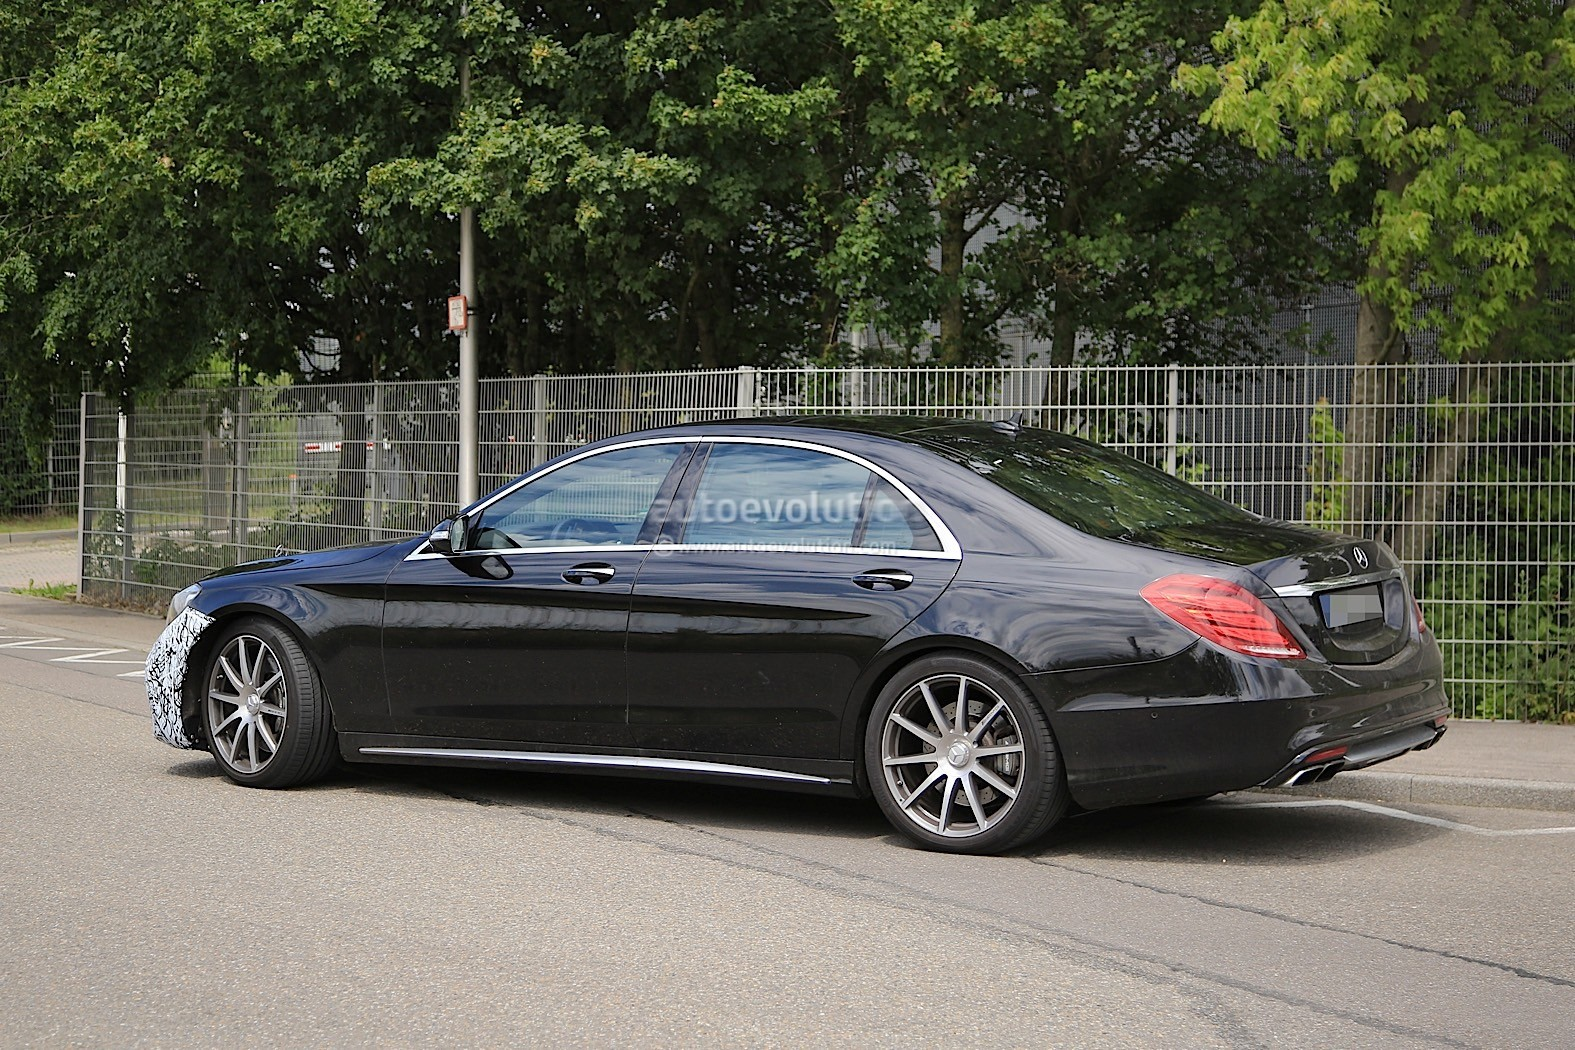 Opulence Galore Scaldarsi Emperor I Mercedes Maybach S600 110463 additionally 105255 Question Cayman Gts Vs New Gt4 Should I Swap together with 33548969 additionally 1965 Vw Bug Root Bier Pan moreover 2018 Mercedes Amg S63 Sedan Starts Testing With New Engine 109339. on 69 porsche 911 engine